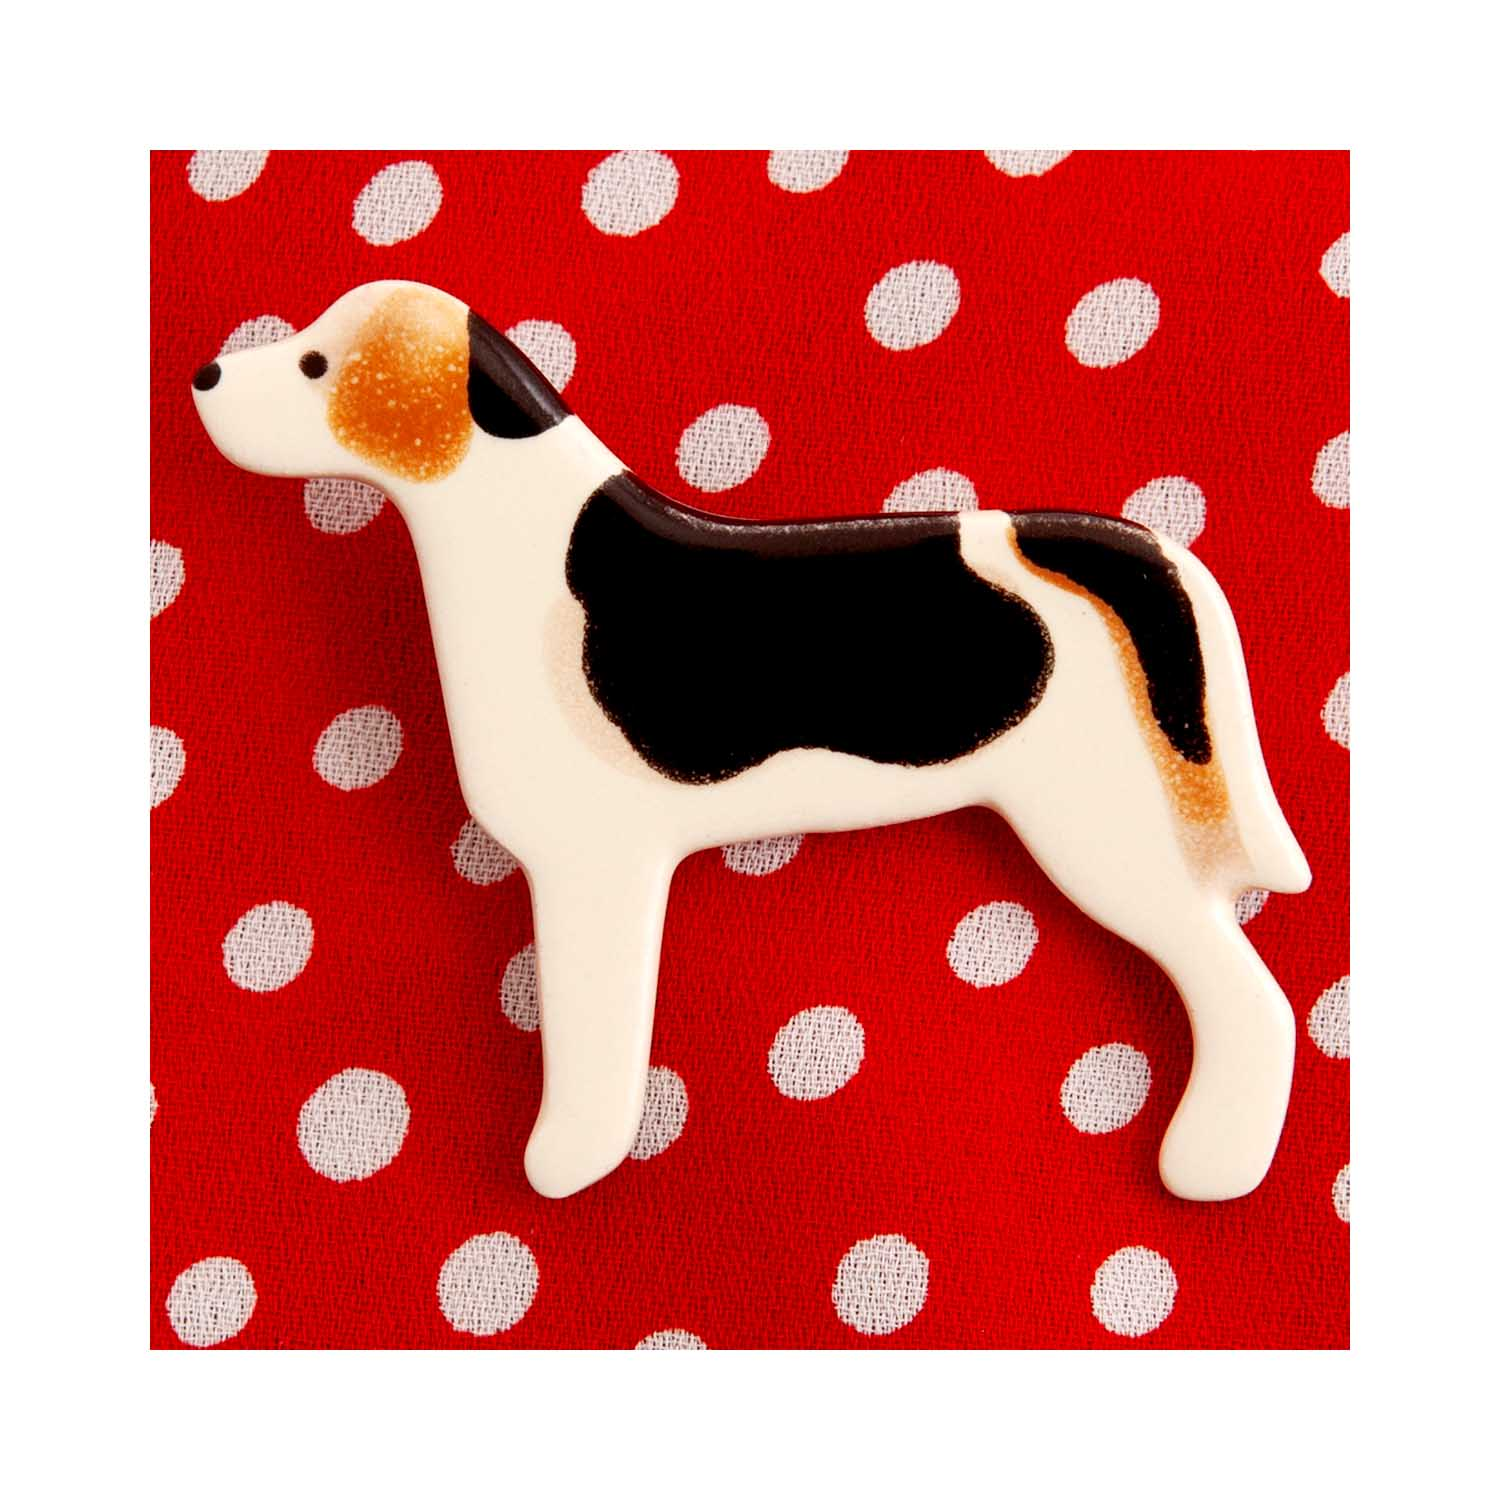 Dog Lover Gifts available at Dog Krazy Gifts – Ceramic Beagle Brooch by Mary Goldberg of Stockwell Ceramics, Just Part Of Our Collection Of Beagle Themed Gifts, Available At www.dogkrazygifts.co.uk